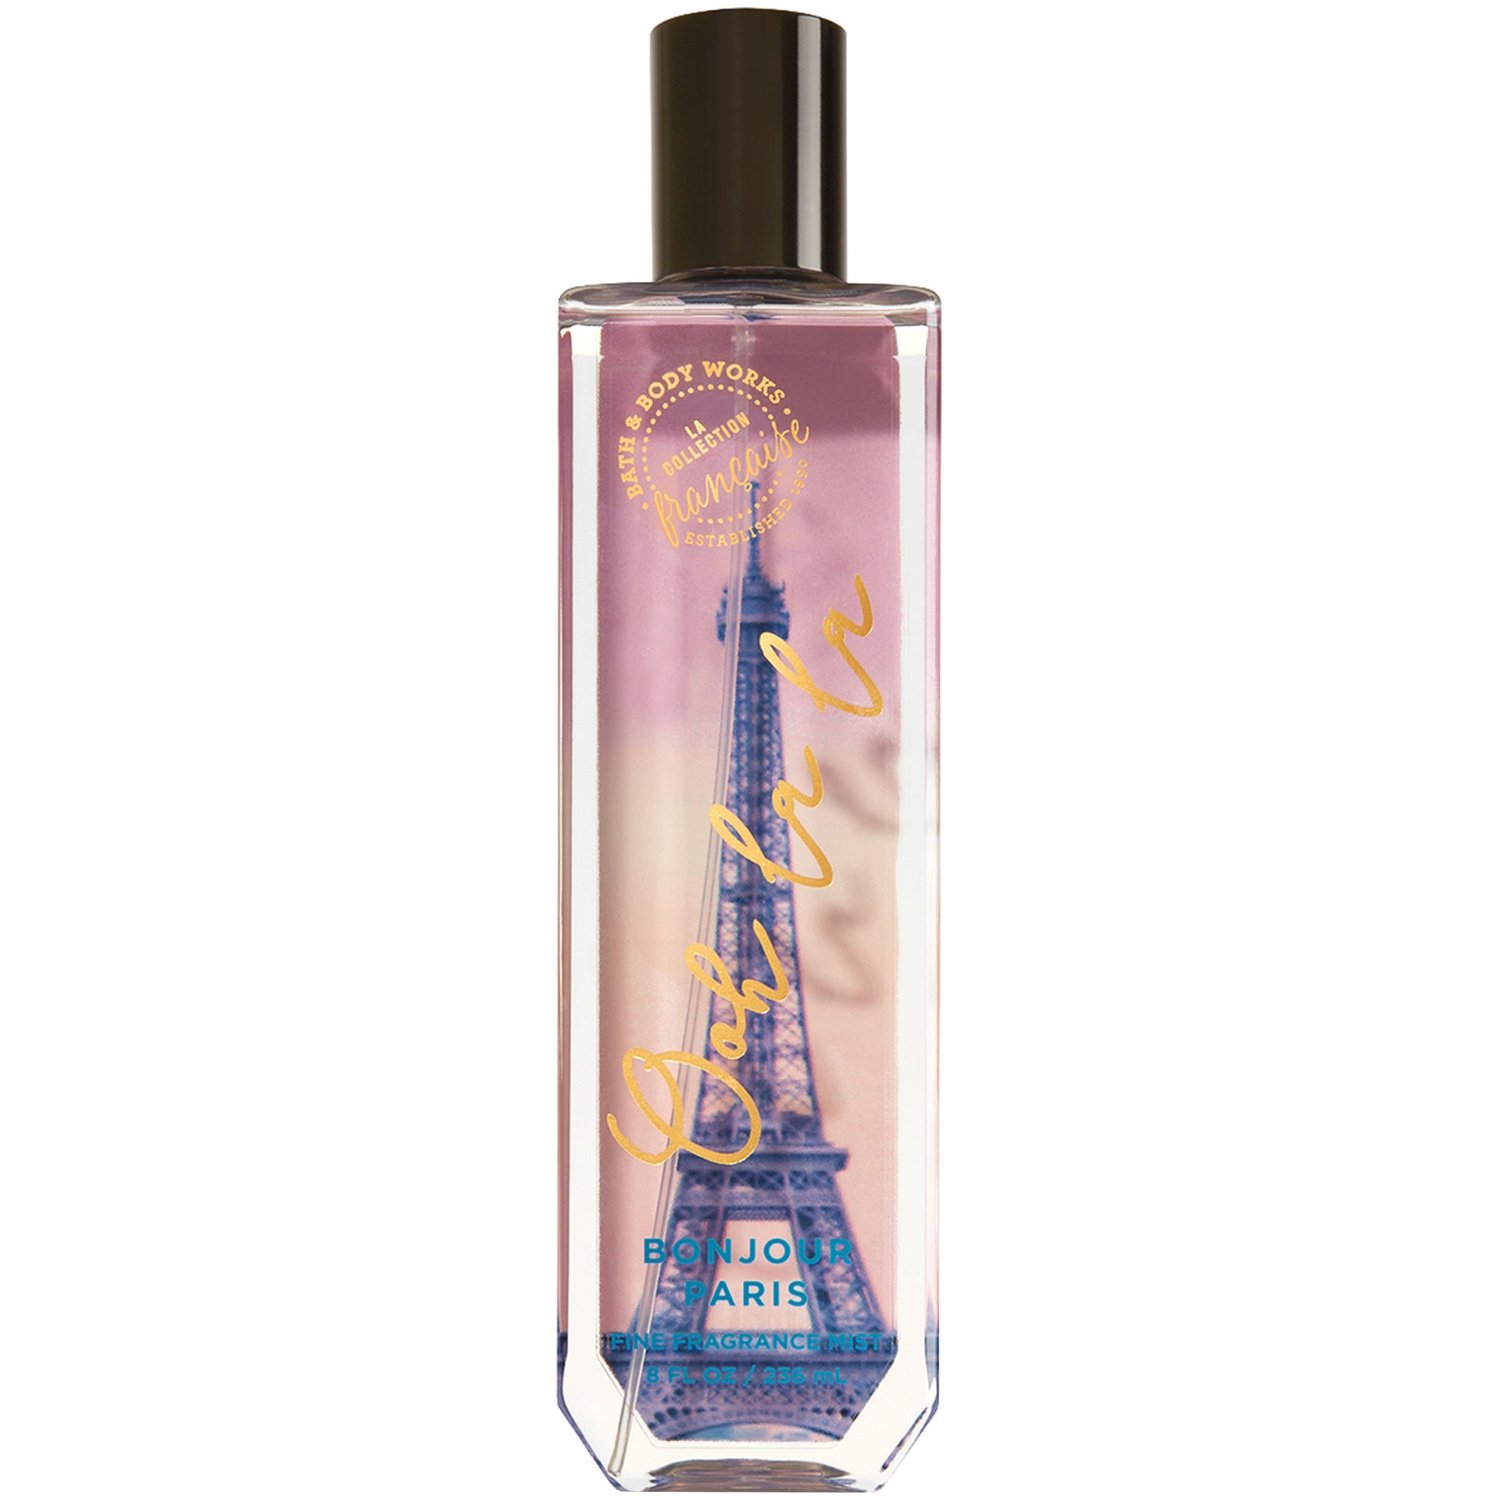 Bath and Body Works Bonjour Paris Fine Fragrance Mist 8 Ounce Full Size Retired Fragrance